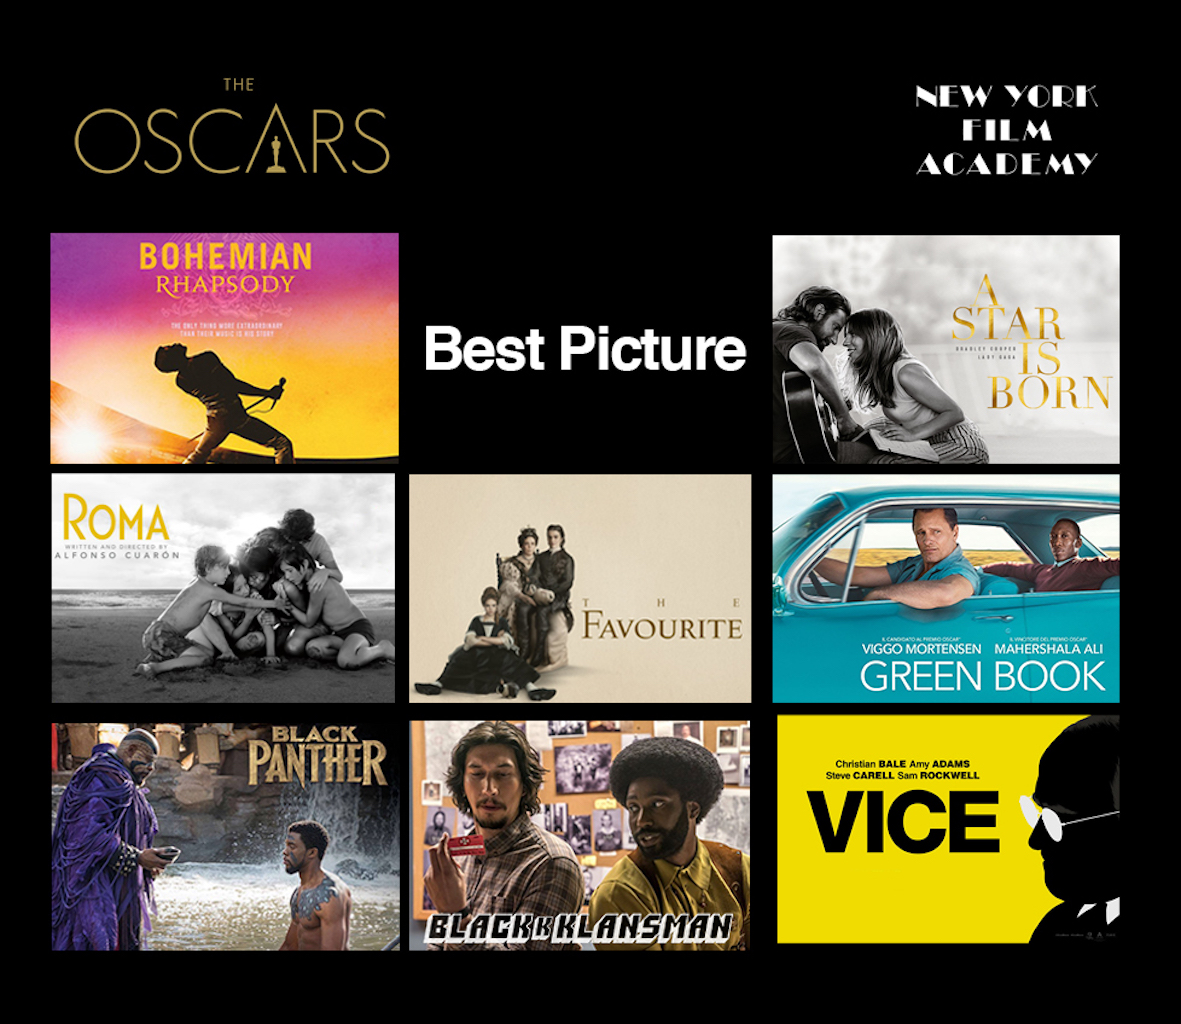 2019 Academy Awards: The Best Picture Nominees